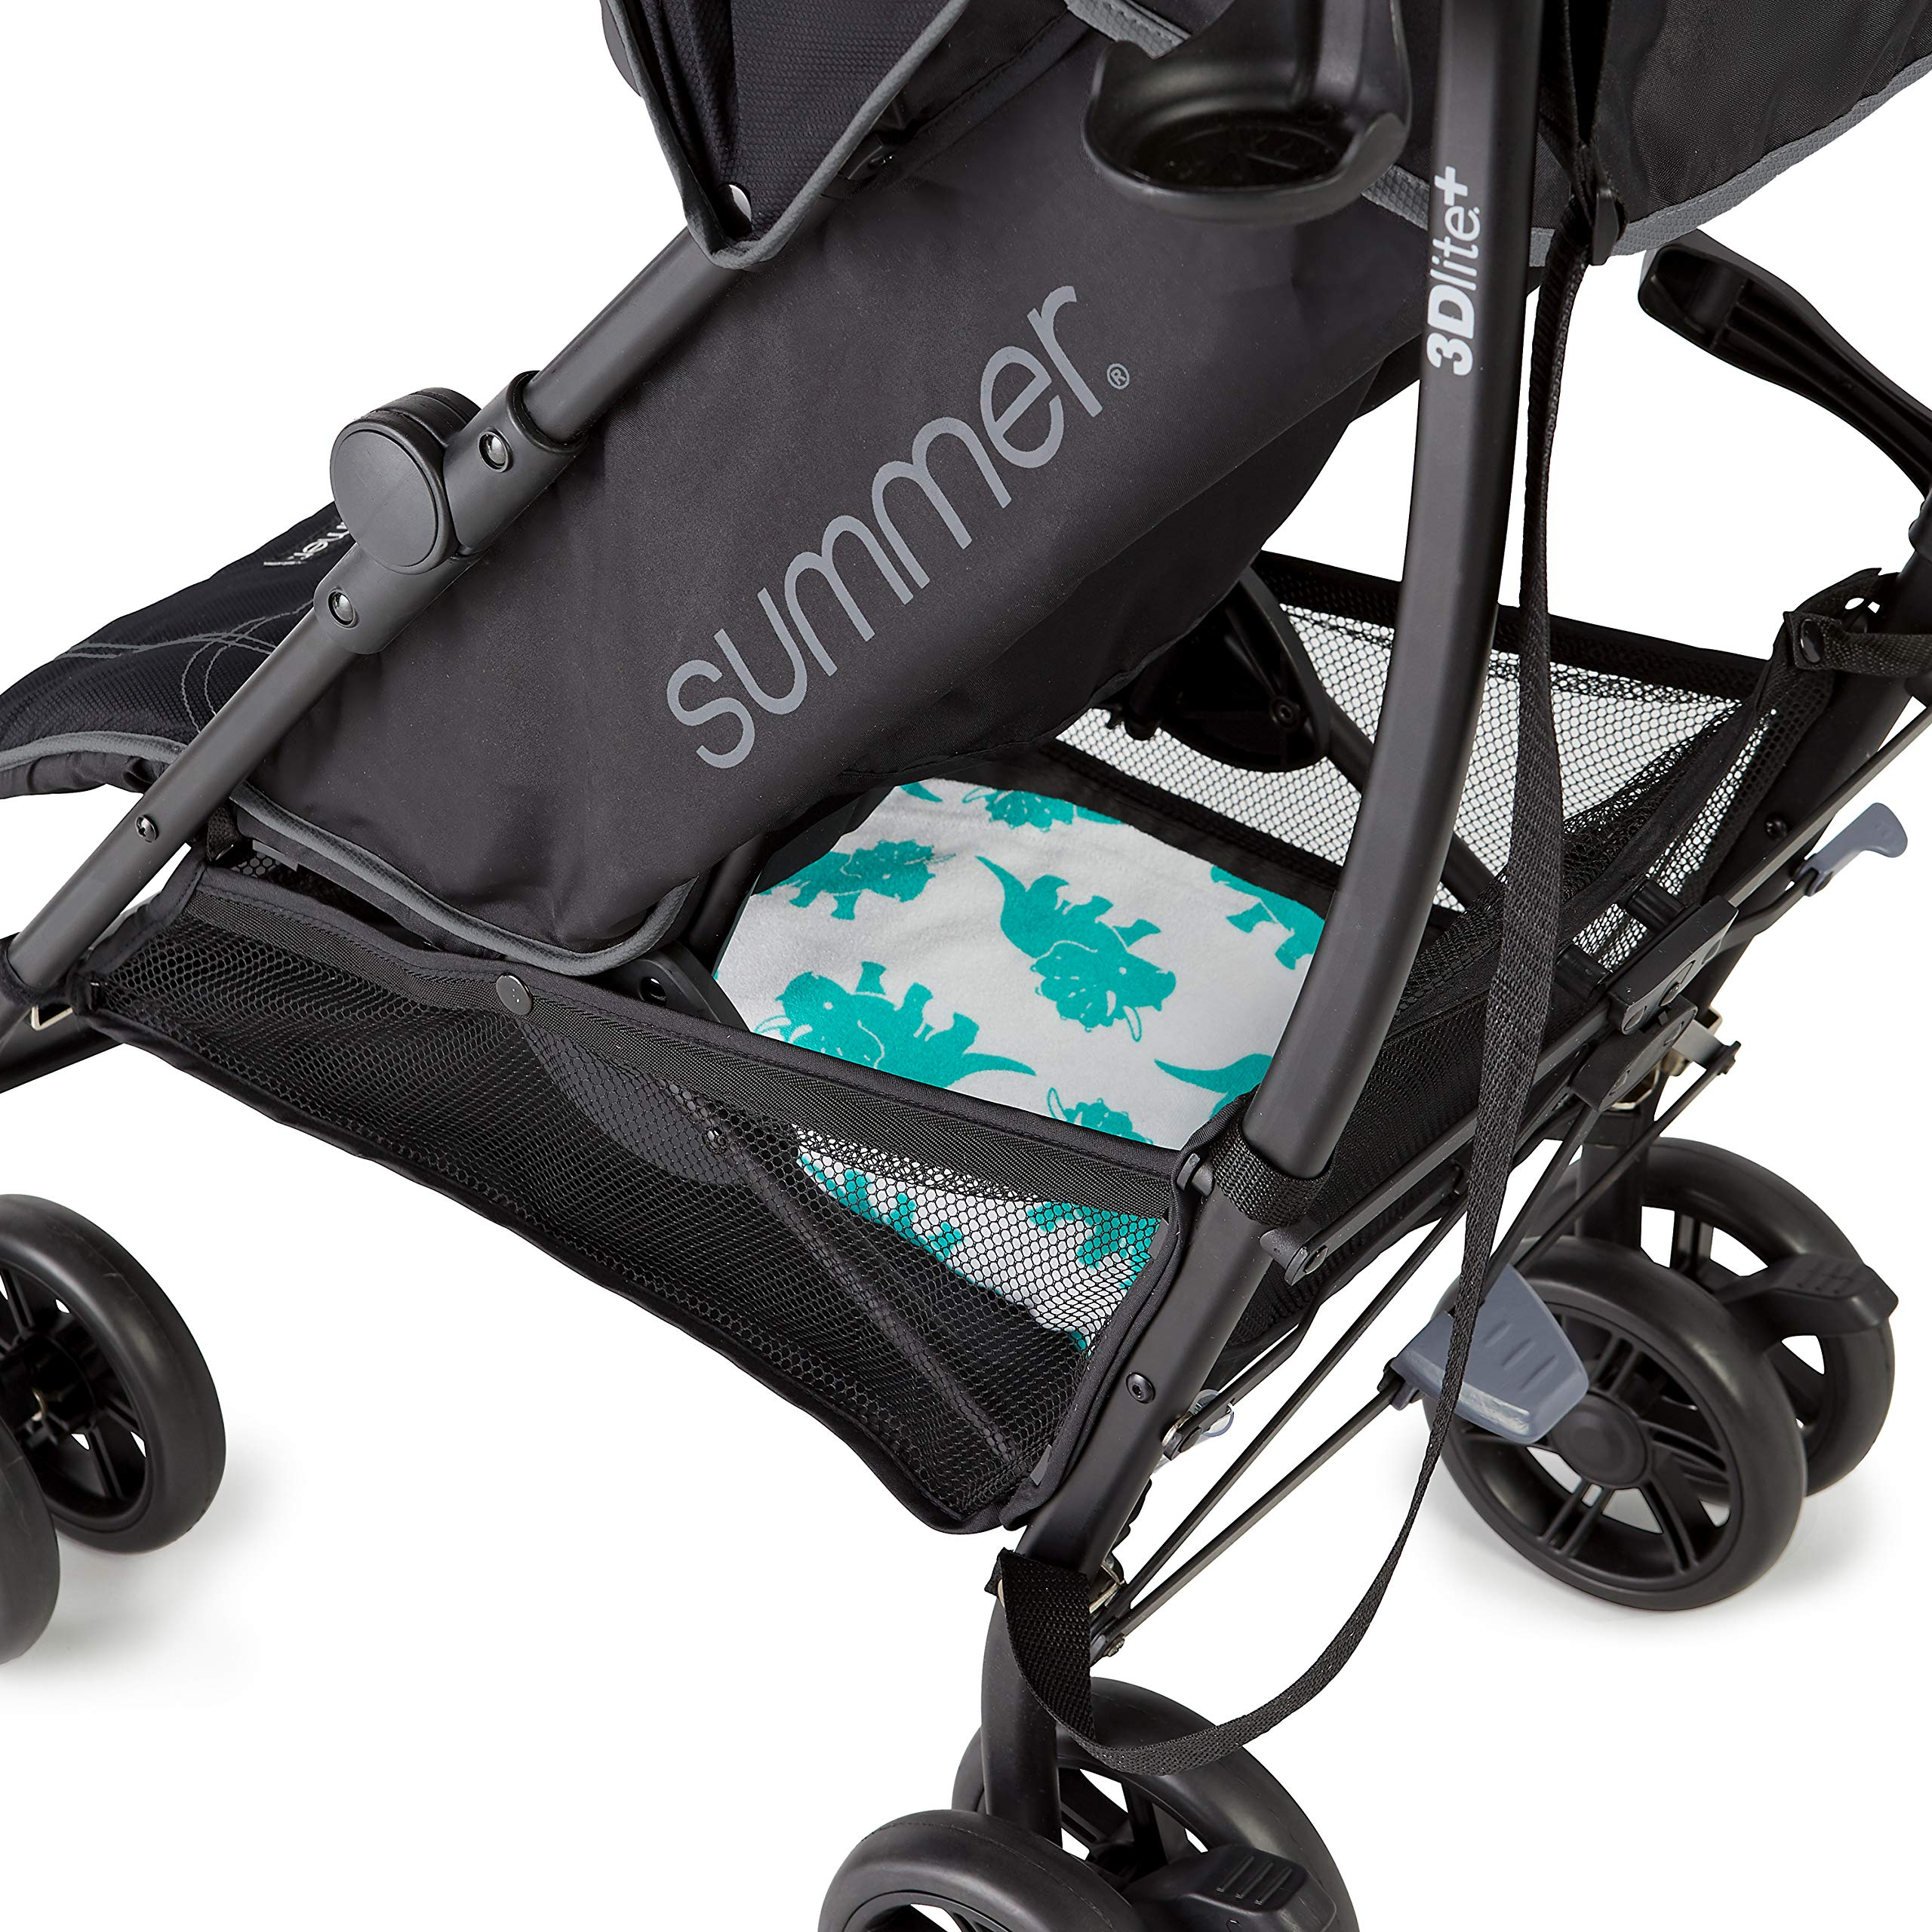 Summer 3Dlite+ Convenience Stroller, Matte Black - Lightweight Umbrella Stroller with Oversized Canopy, Extra-Large Storage and Compact Fold by Summer Infant (Image #7)